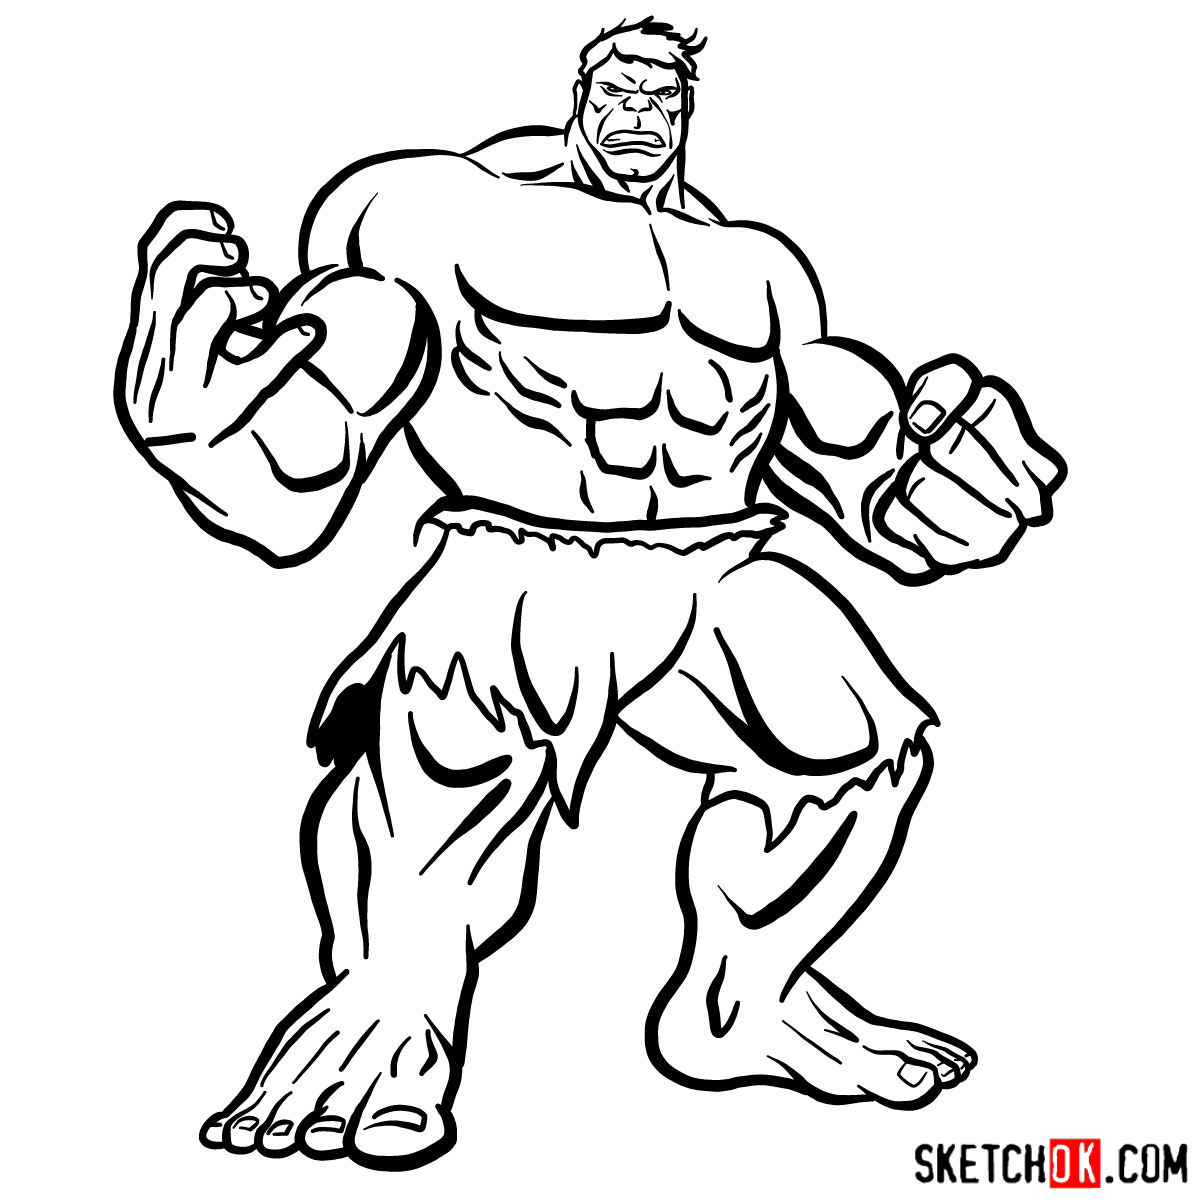 how to draw hulk easy step by step learn how to draw the hulk the hulk step by step step easy how hulk to by step draw